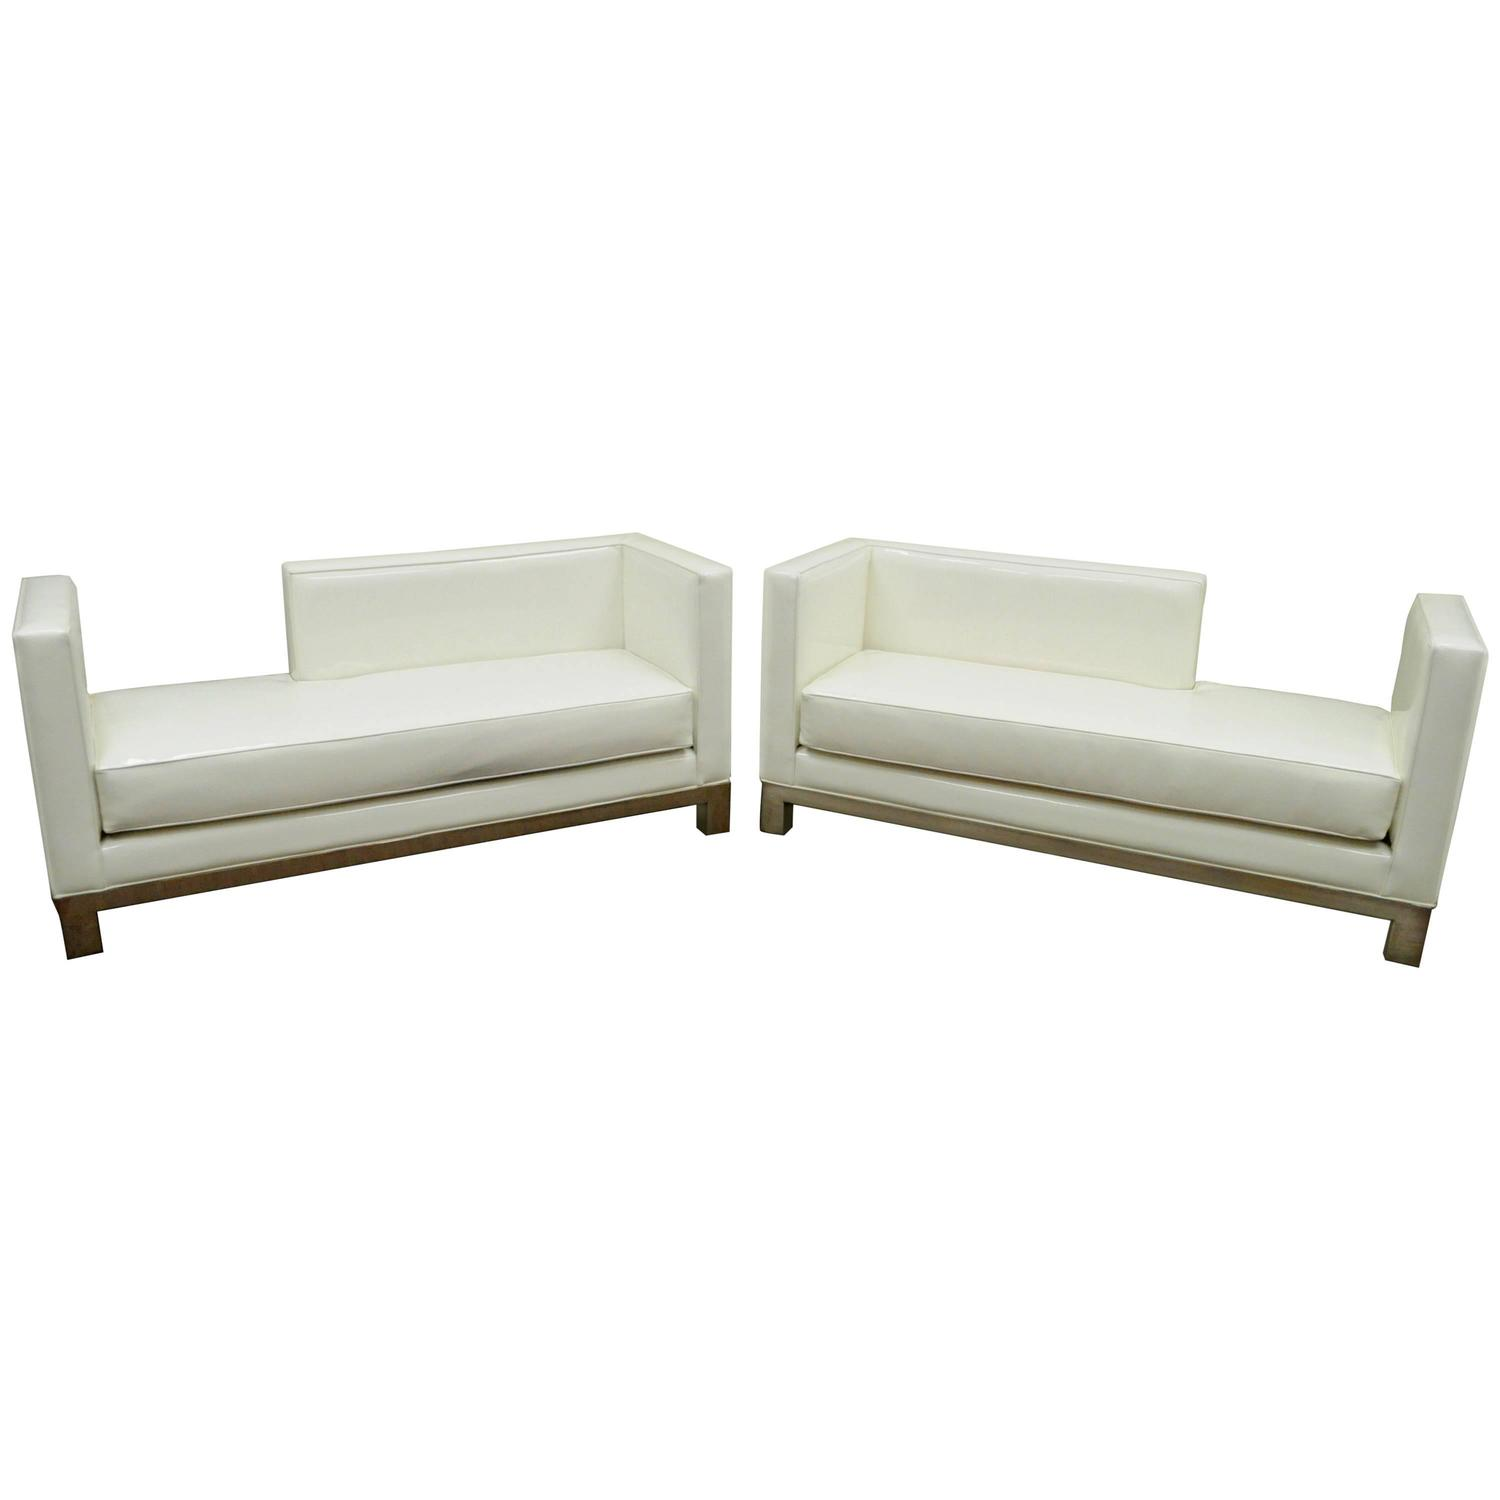 Leather chaise lounge modern great pair of ja casillas for Black metal chaise lounge